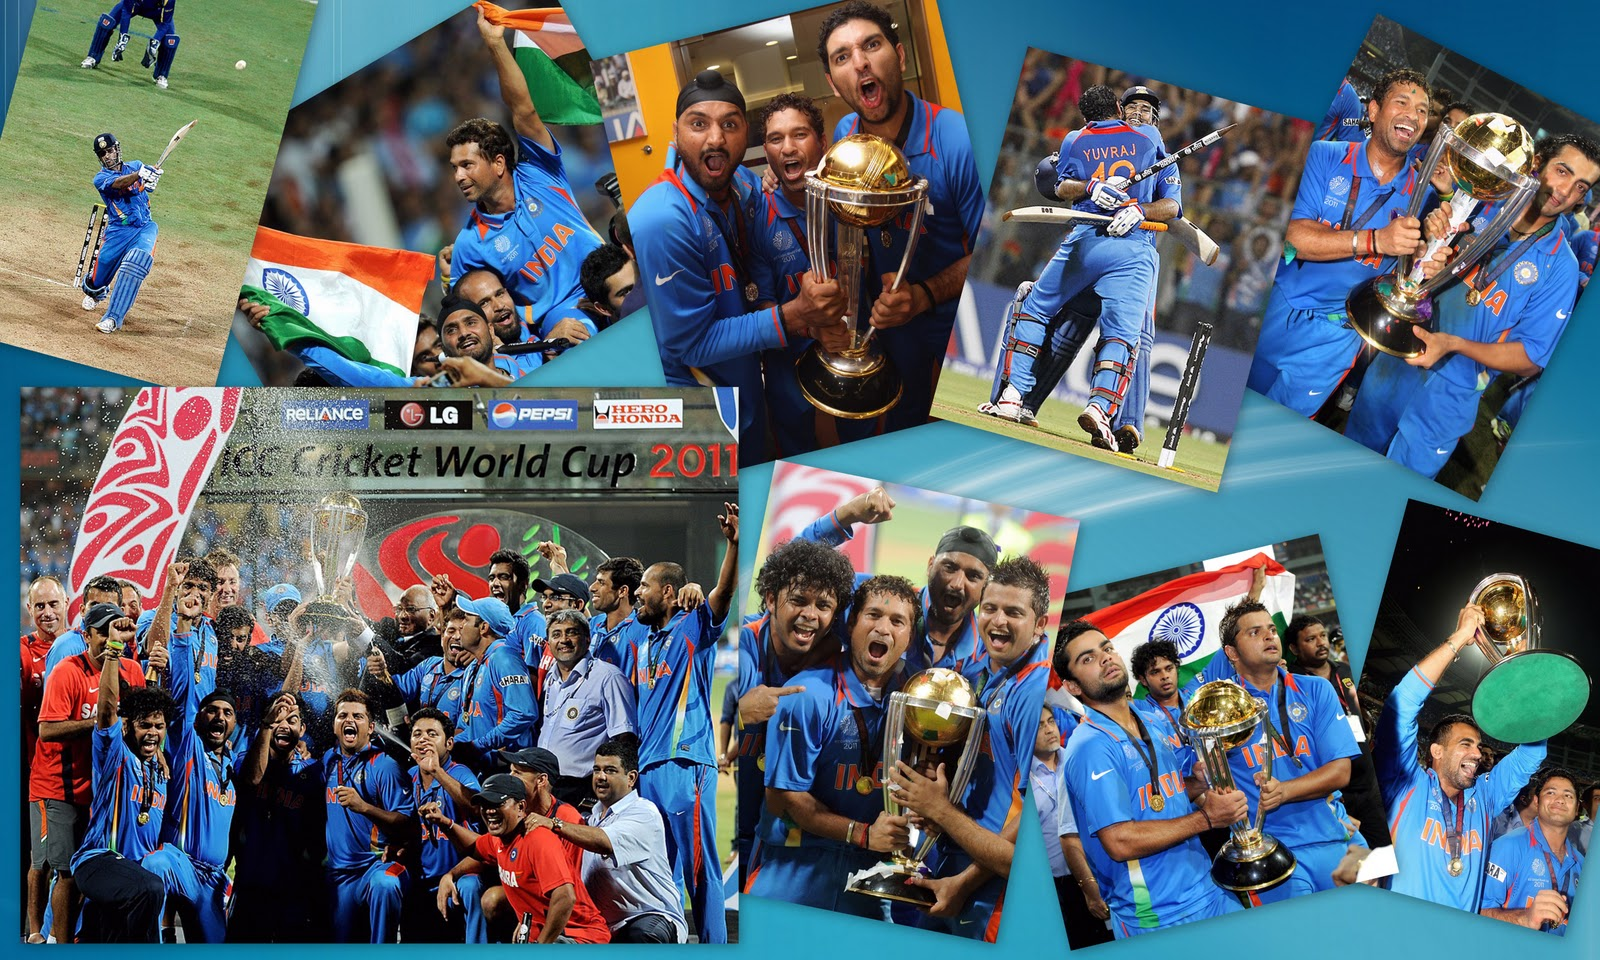 Cricket world cup 2011 hd